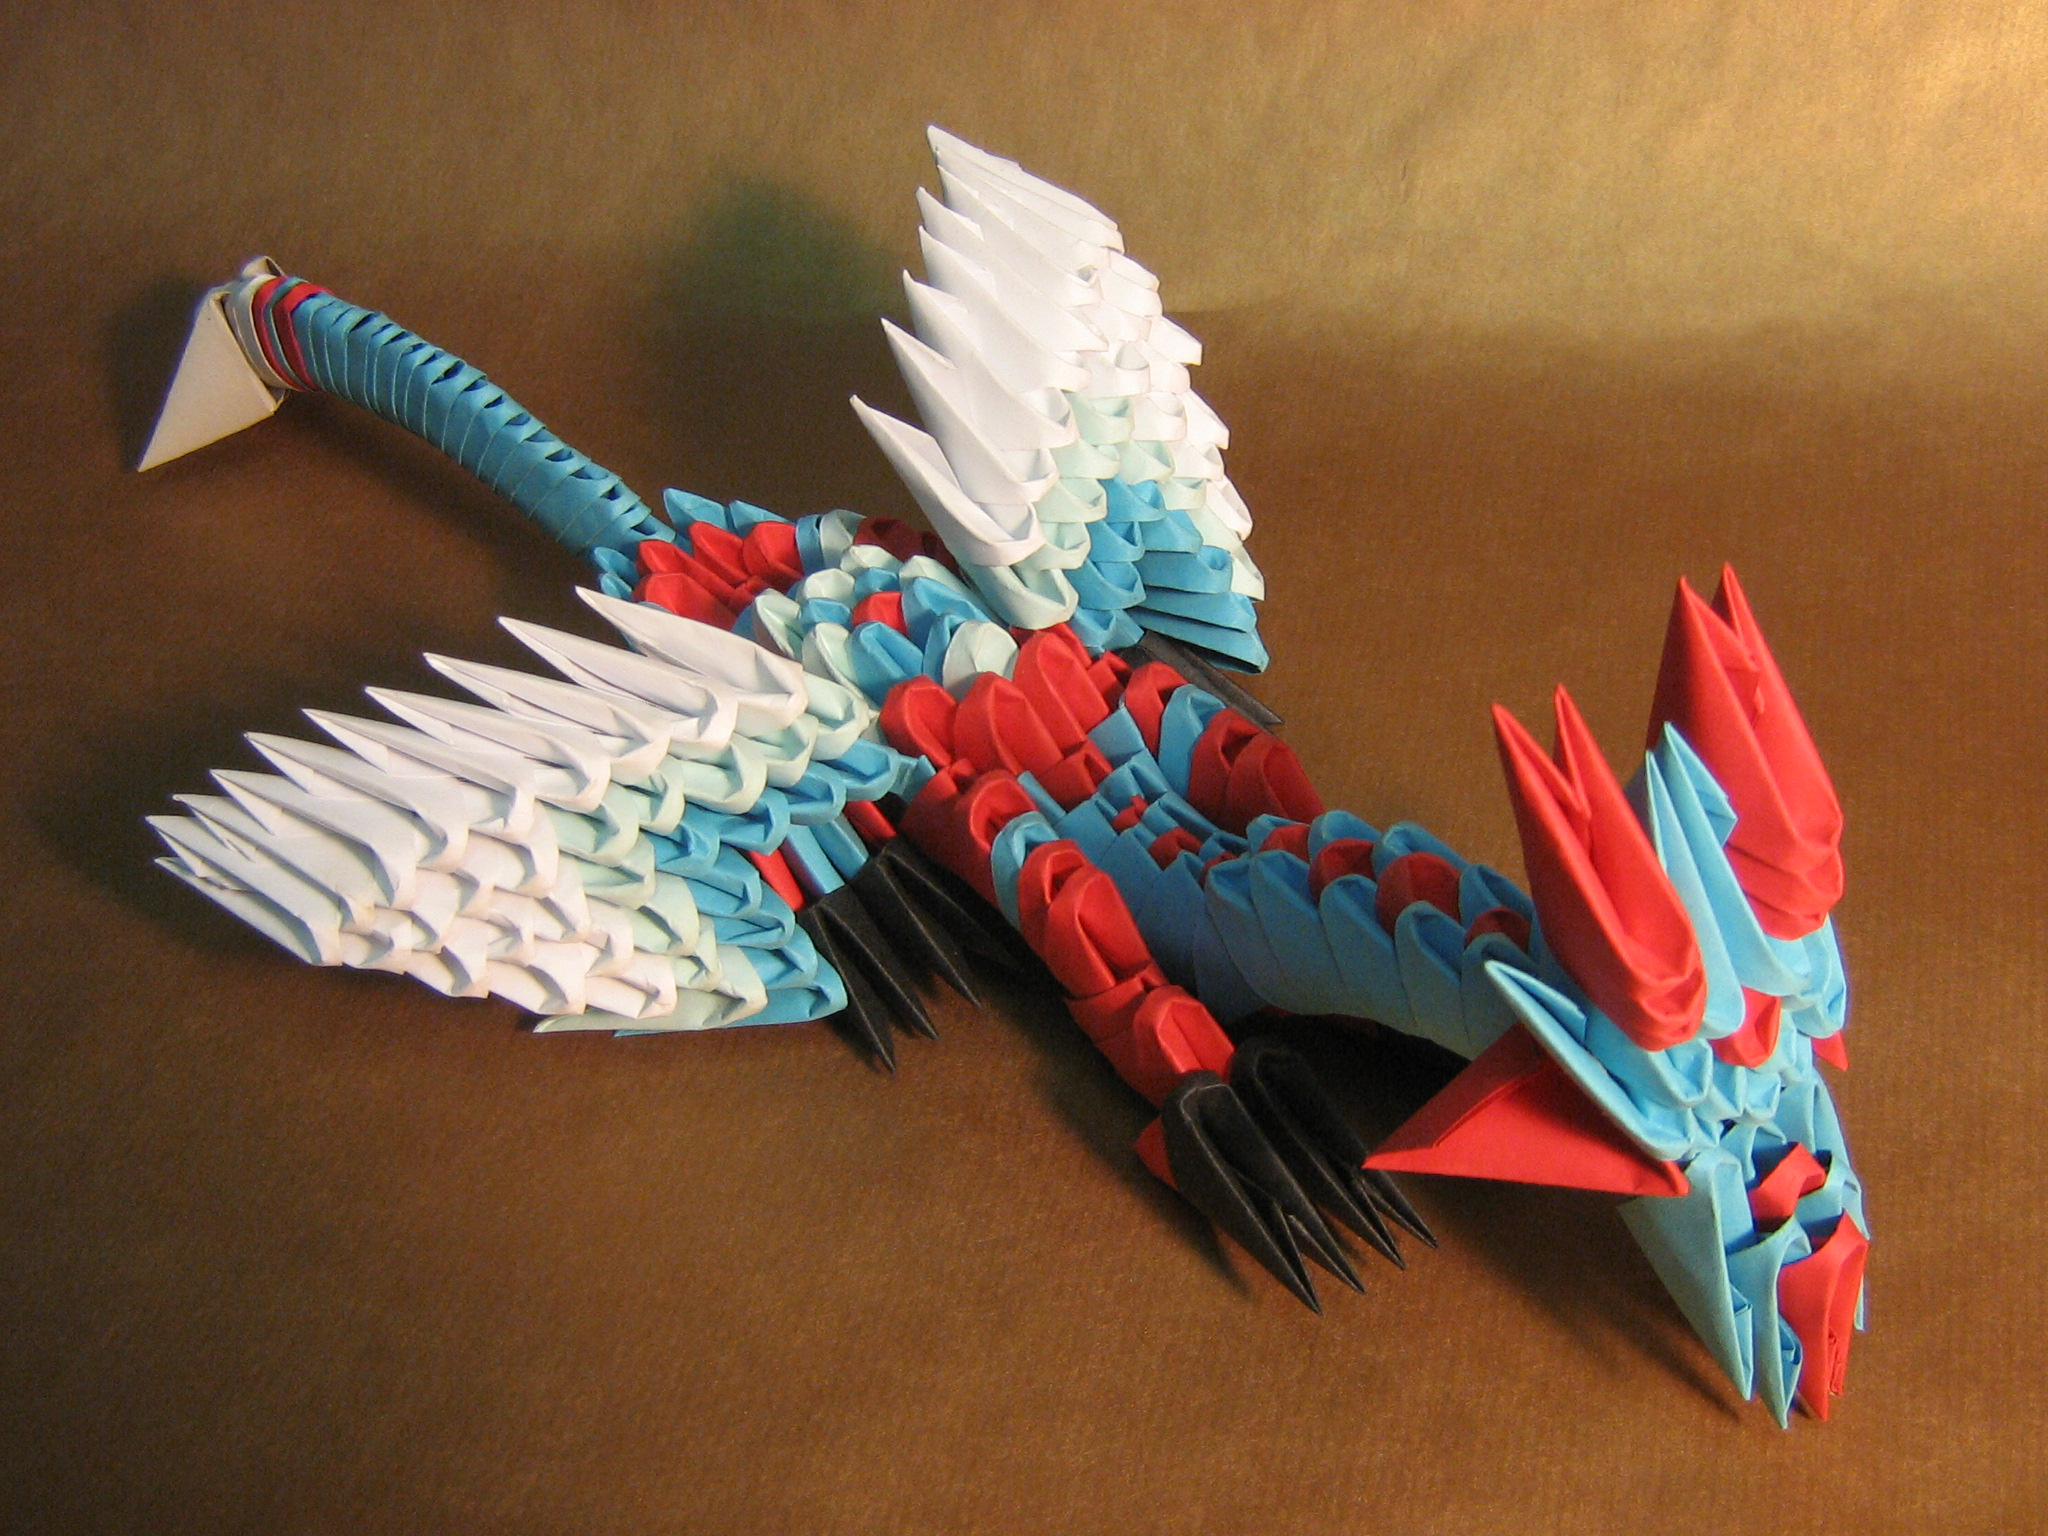 blue dragon 3D ORIGAMI by aarrnnoo0123 on DeviantArt - photo#18